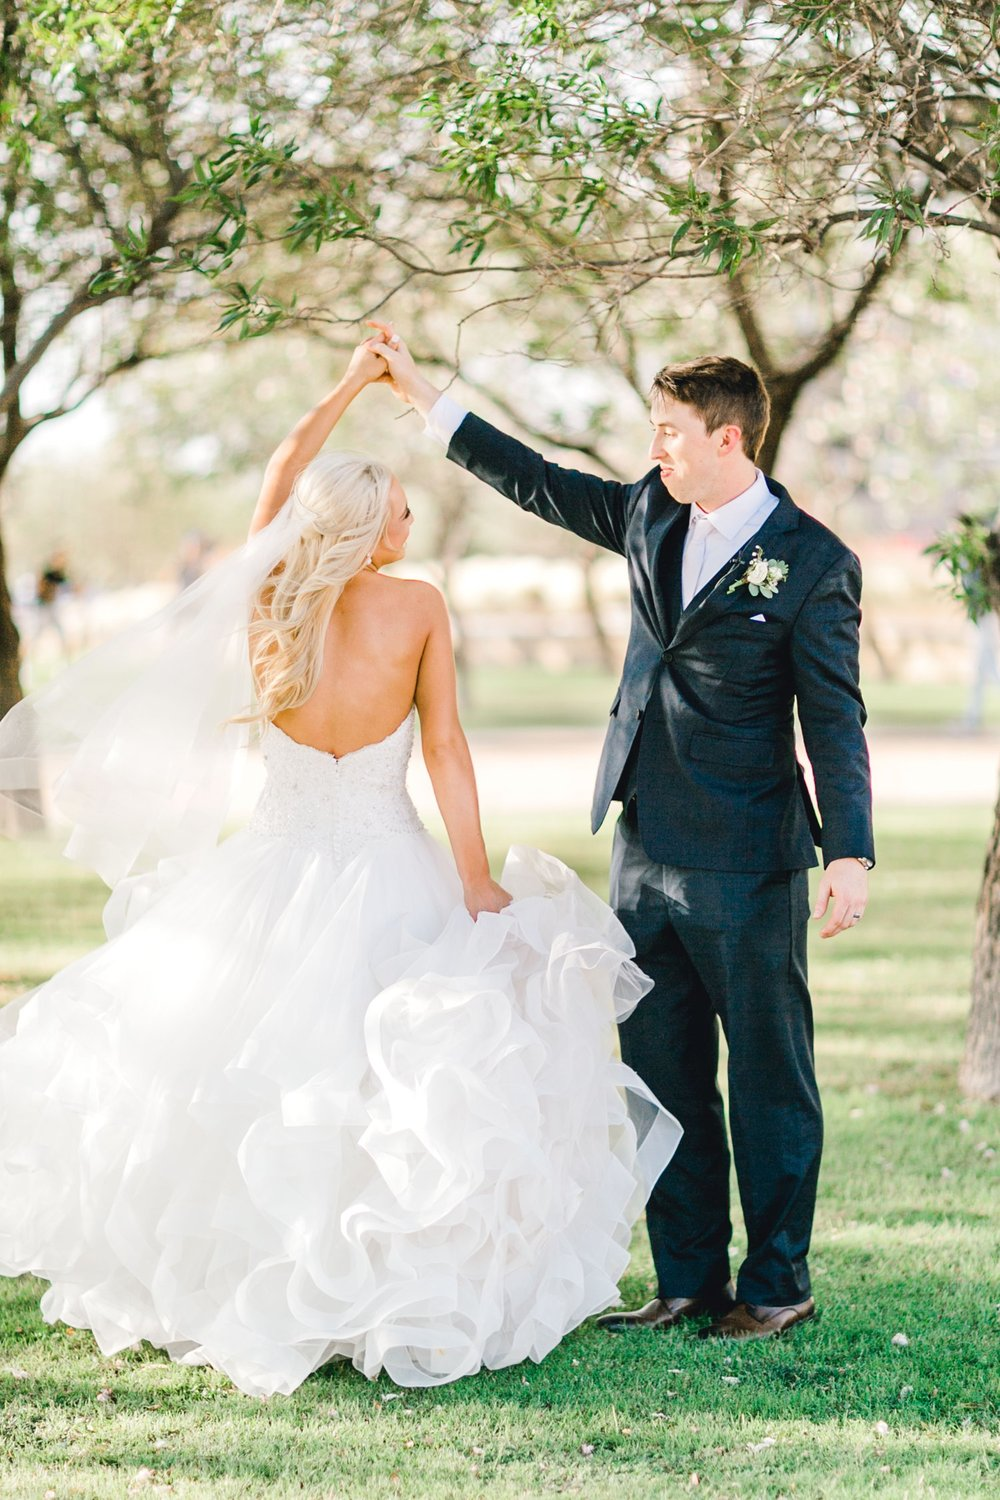 MADI_AND_WILL_STEPHENS_ALLEEJ_LUBBOCK_PHOTOGRAPHER_TEXAS+TECH+FRAZIER_ALUMNI0144.jpg